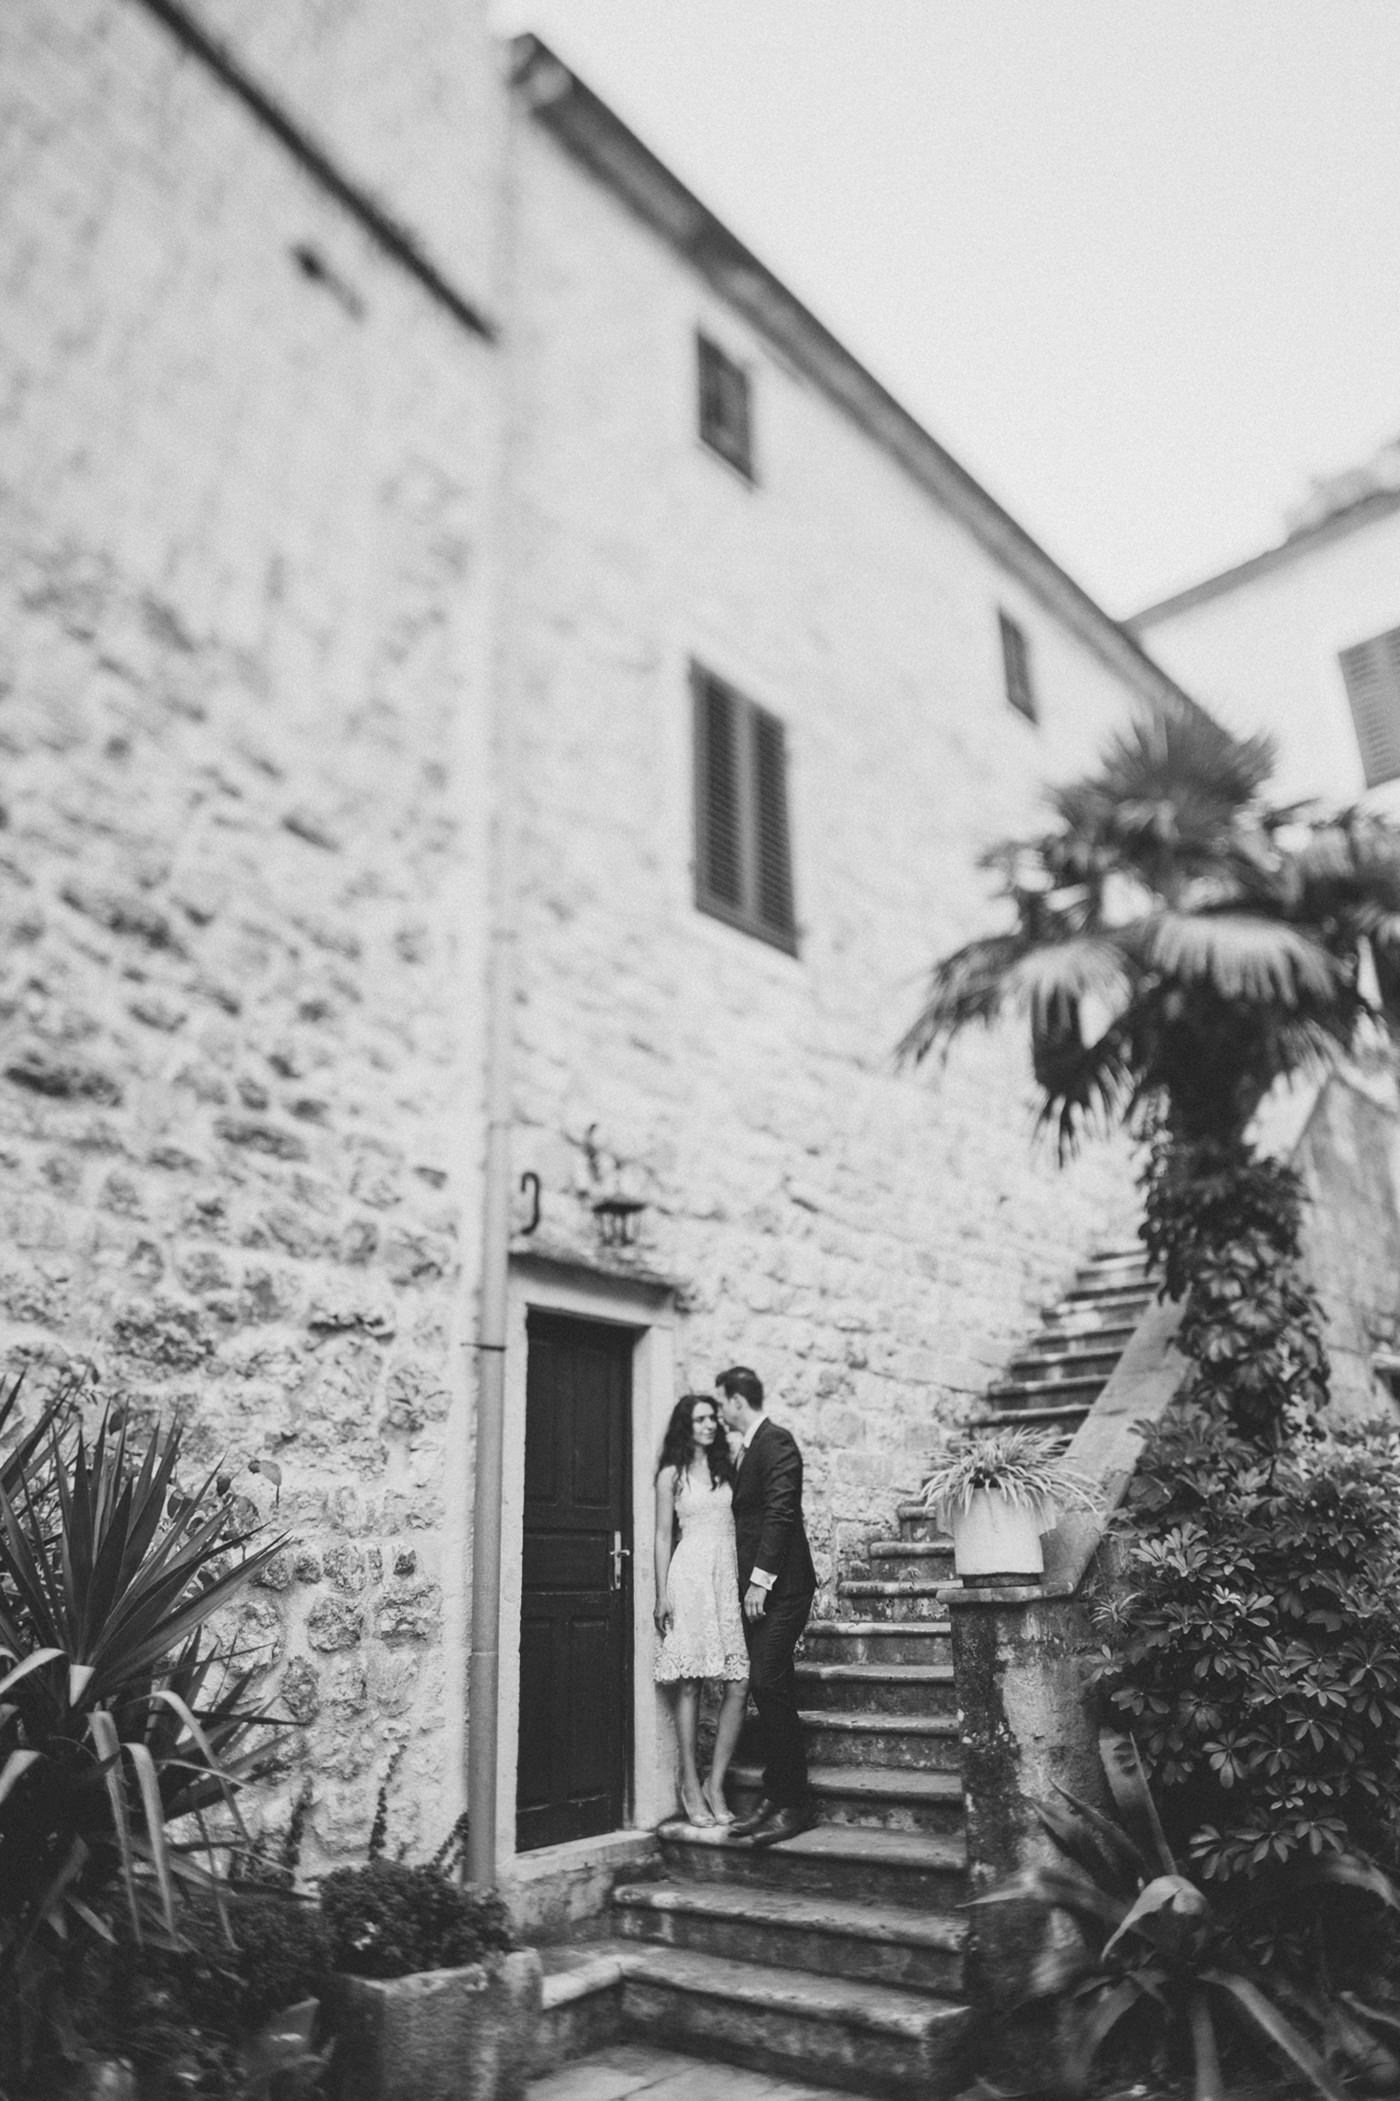 irena-ryan-destination-wedding-photographer-montenegro-kotor-0187